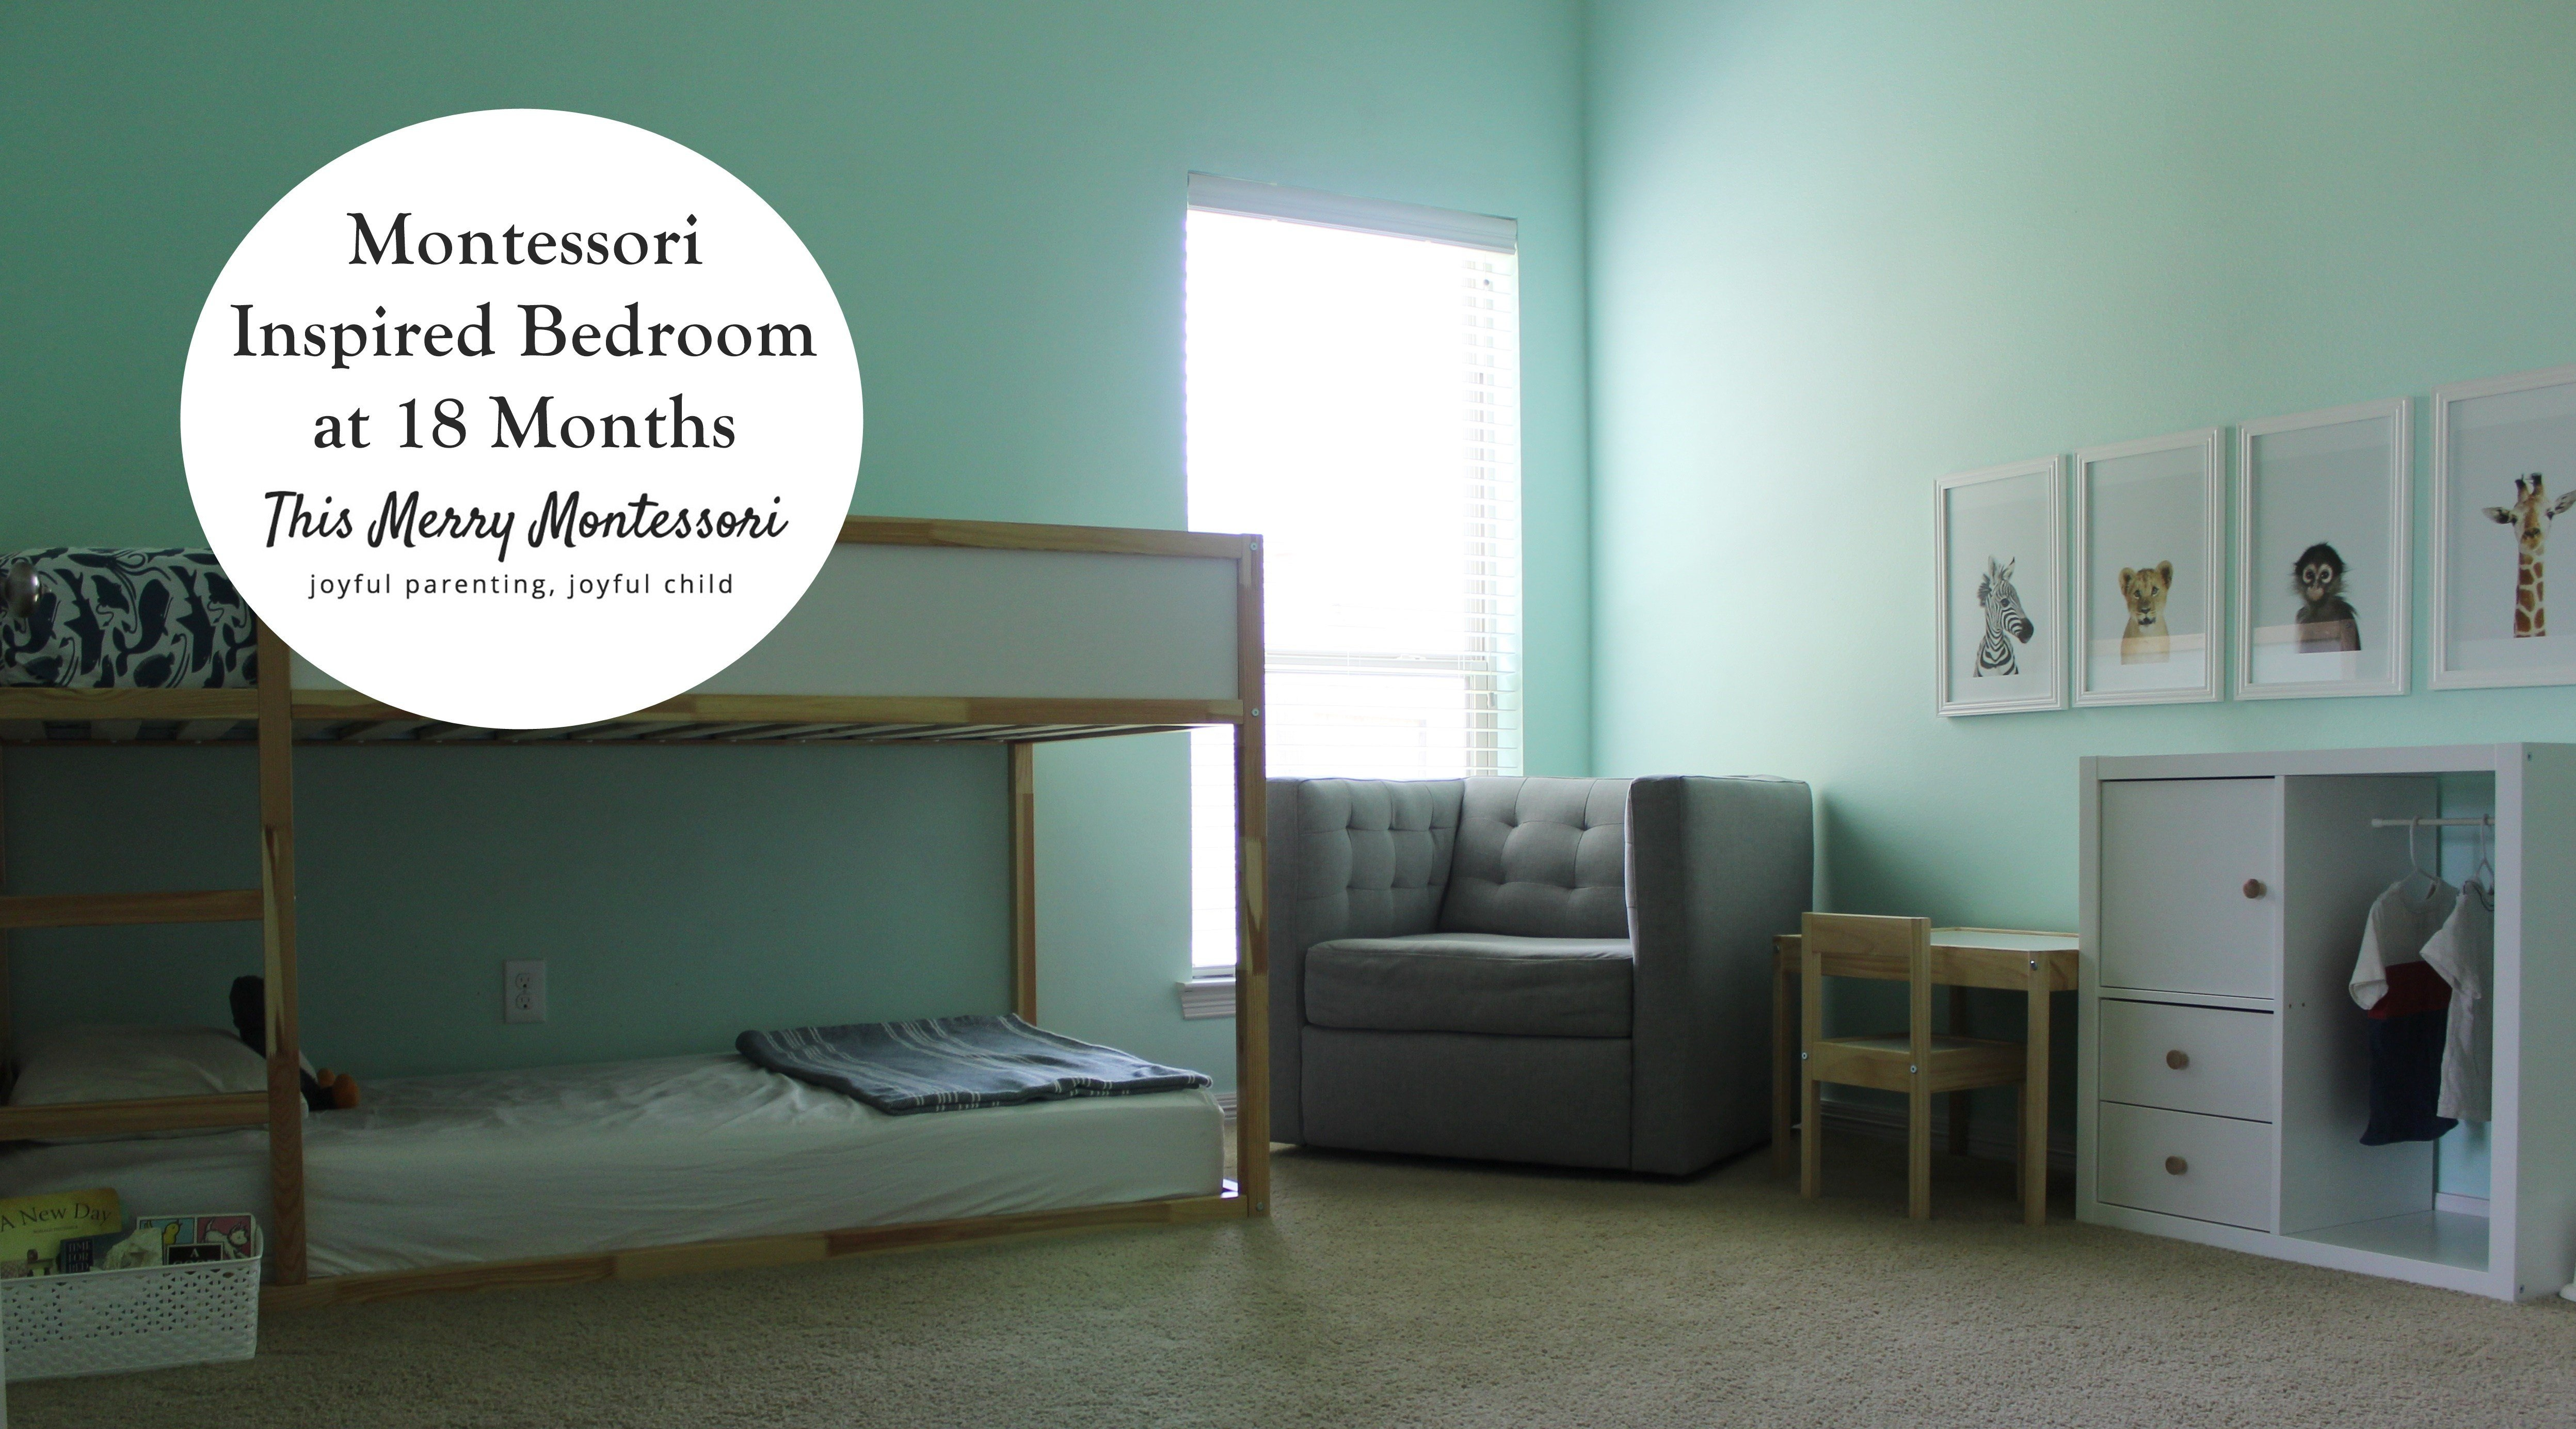 Best Montessori Inspired Bedroom At 18 Months – This Merry With Pictures